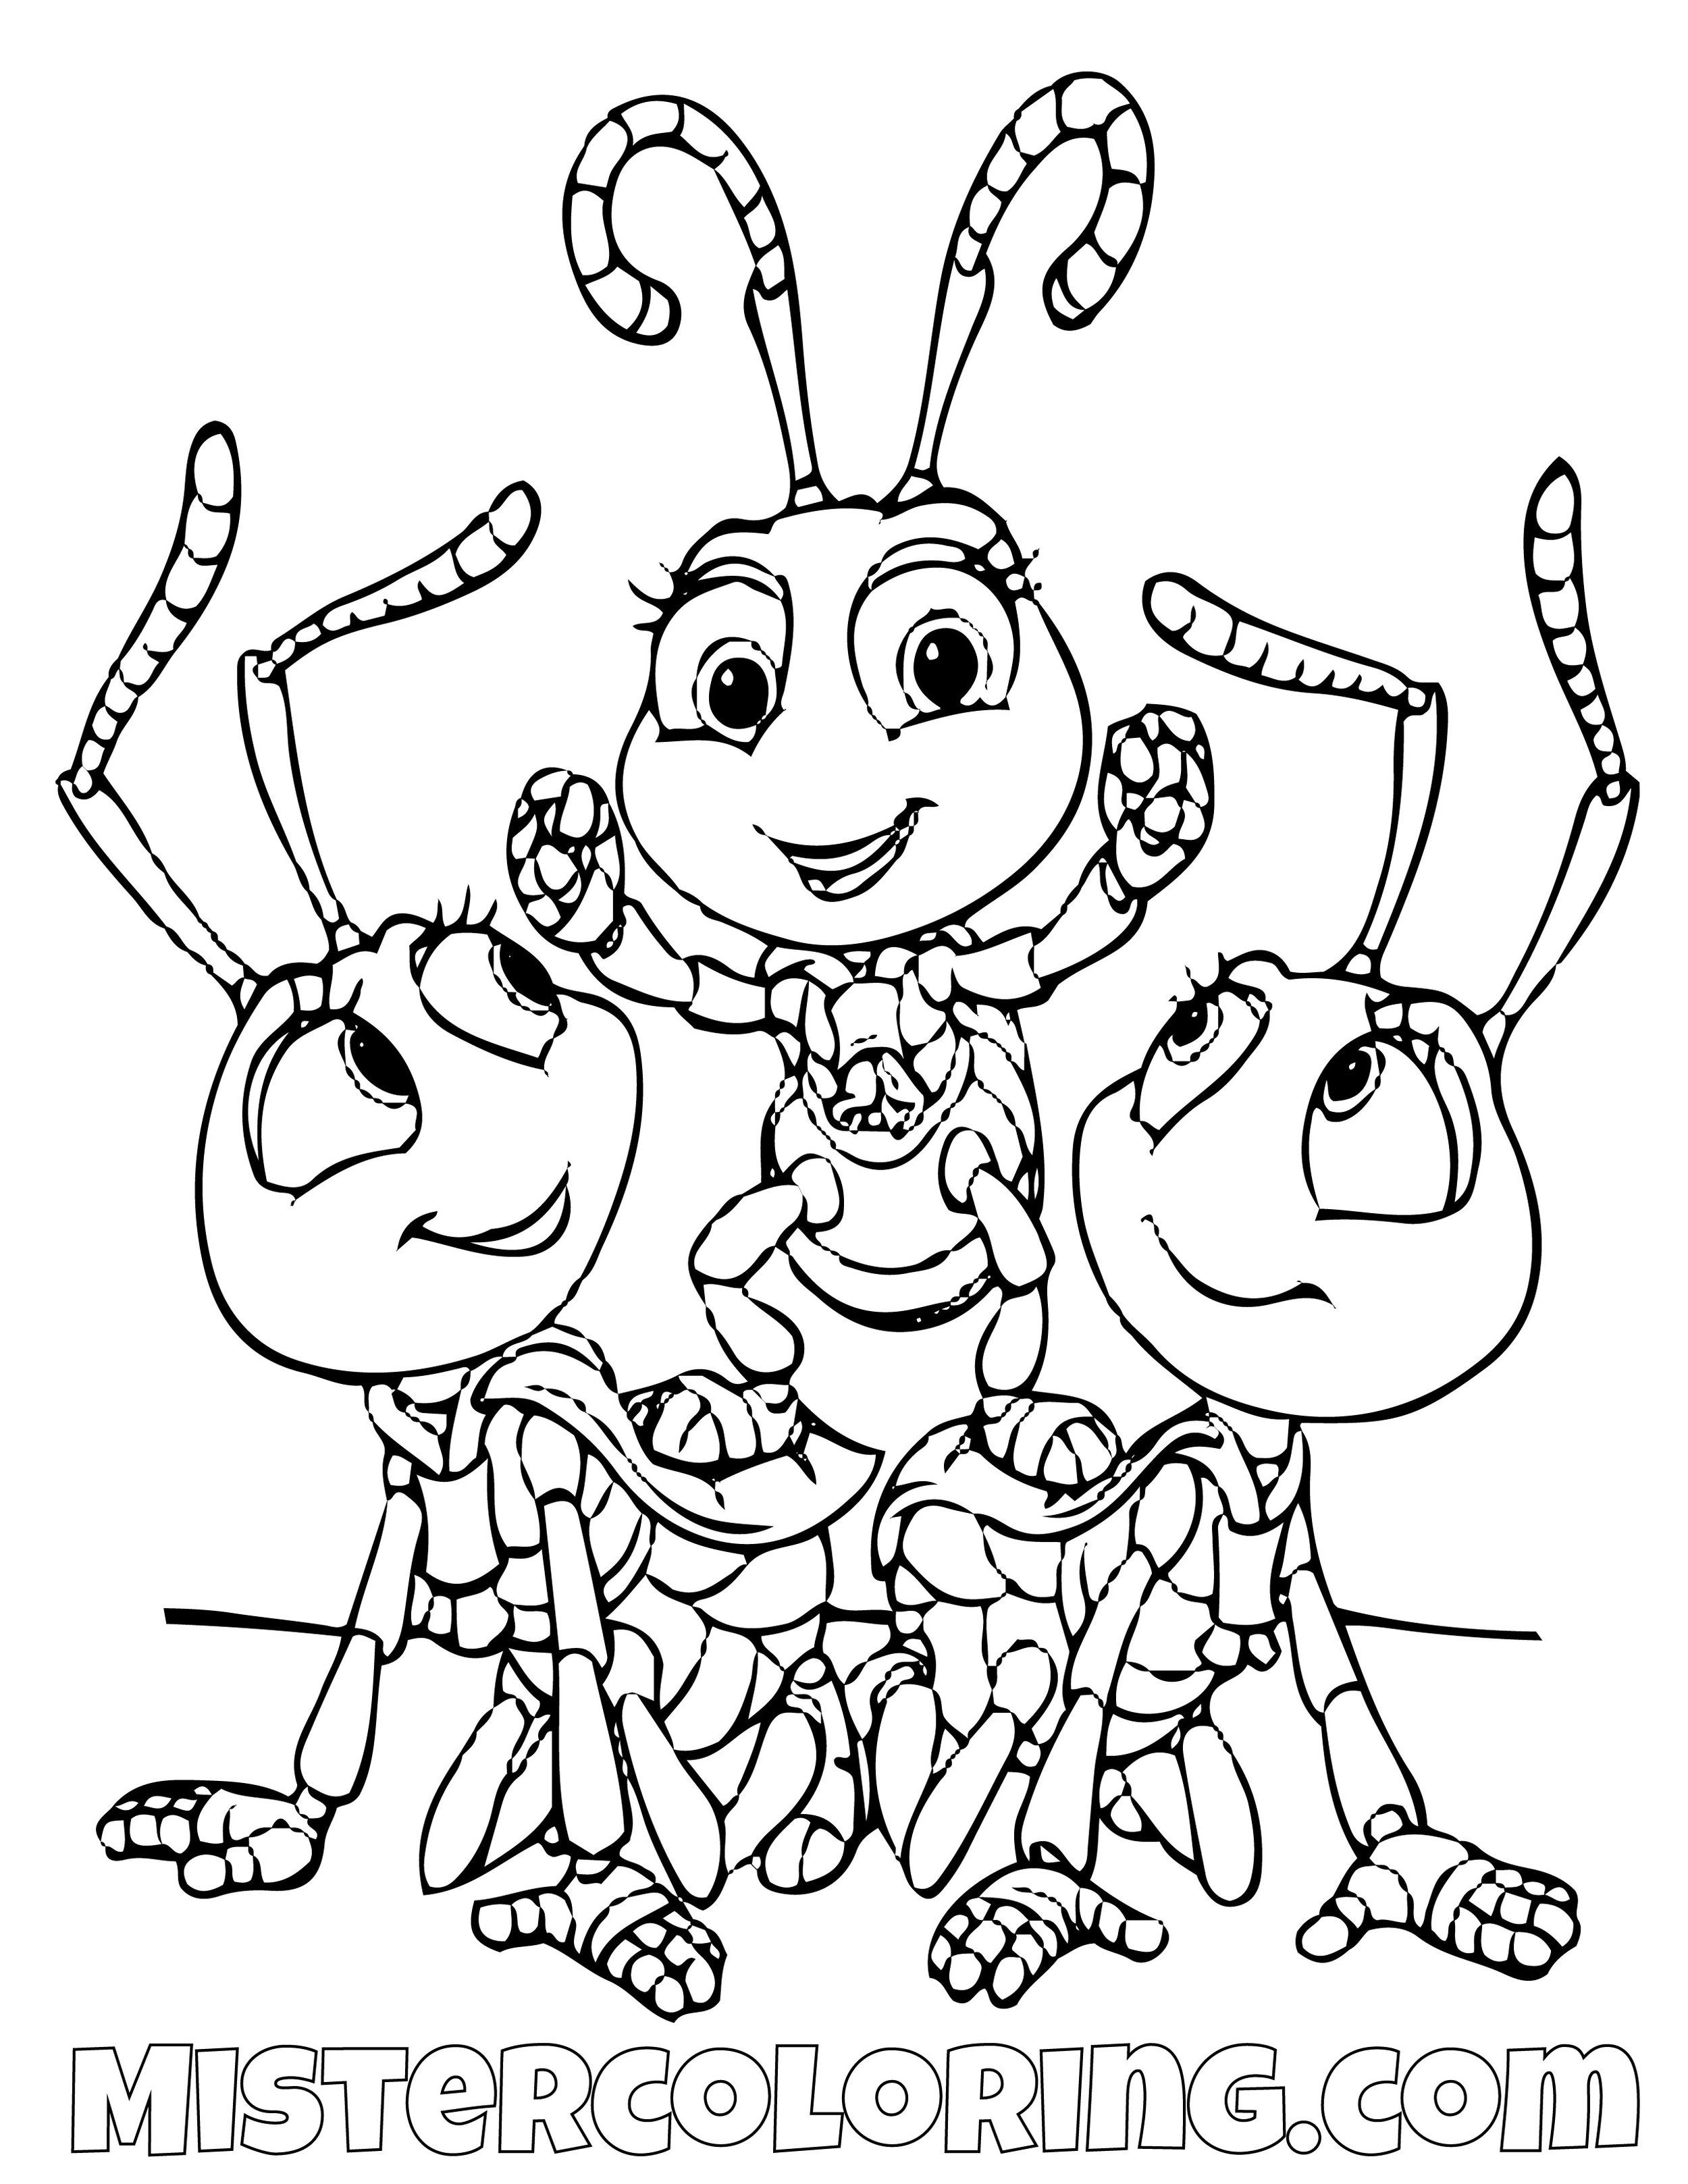 A Bug S Life Coloring Pages For Kids Mister Coloring Unicorn Coloring Pages Monster Coloring Pages Disney Coloring Pages